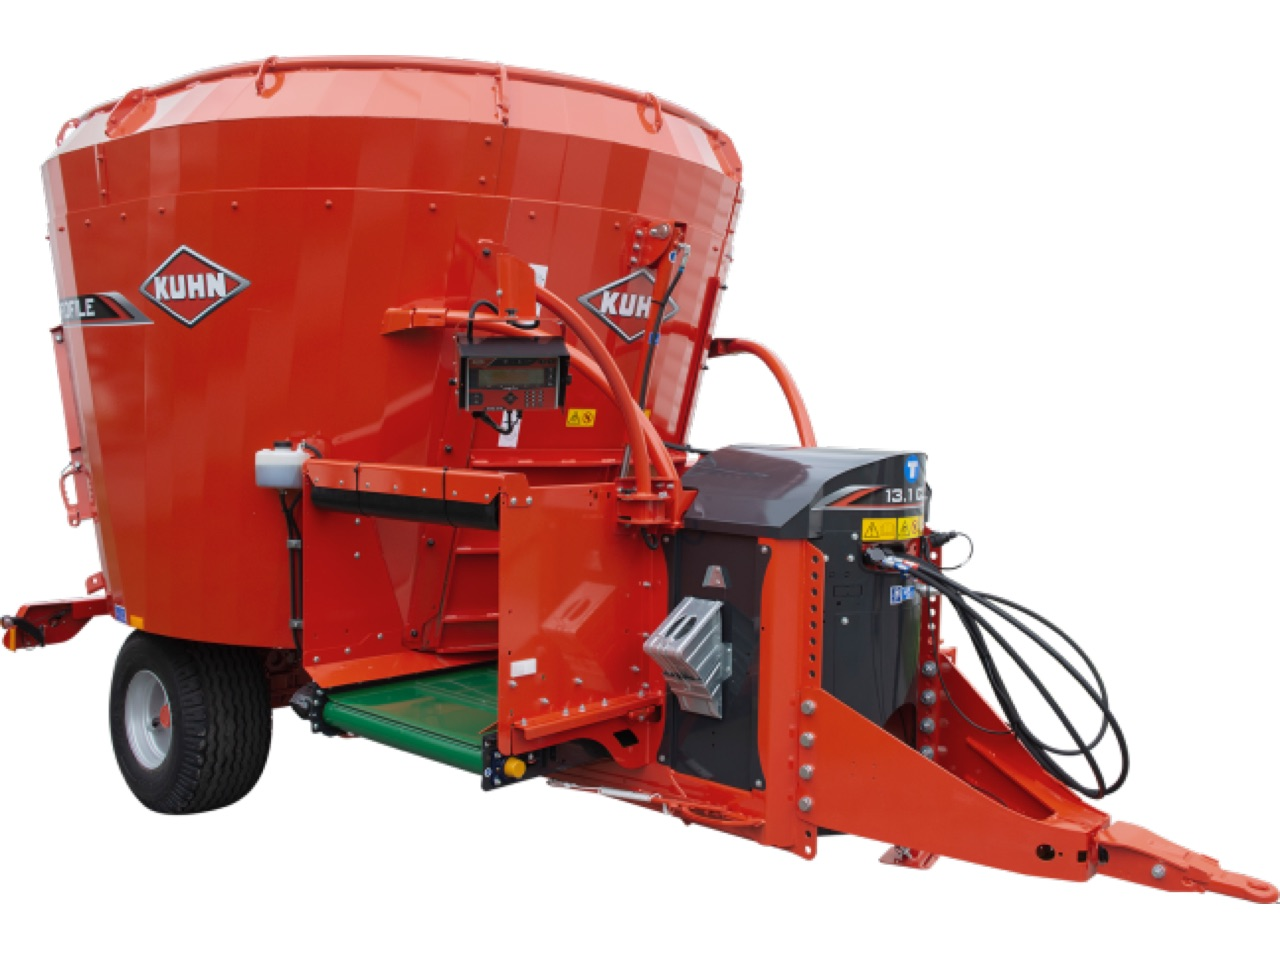 Kuhn Profile 1 CL Profile 9.1 CL